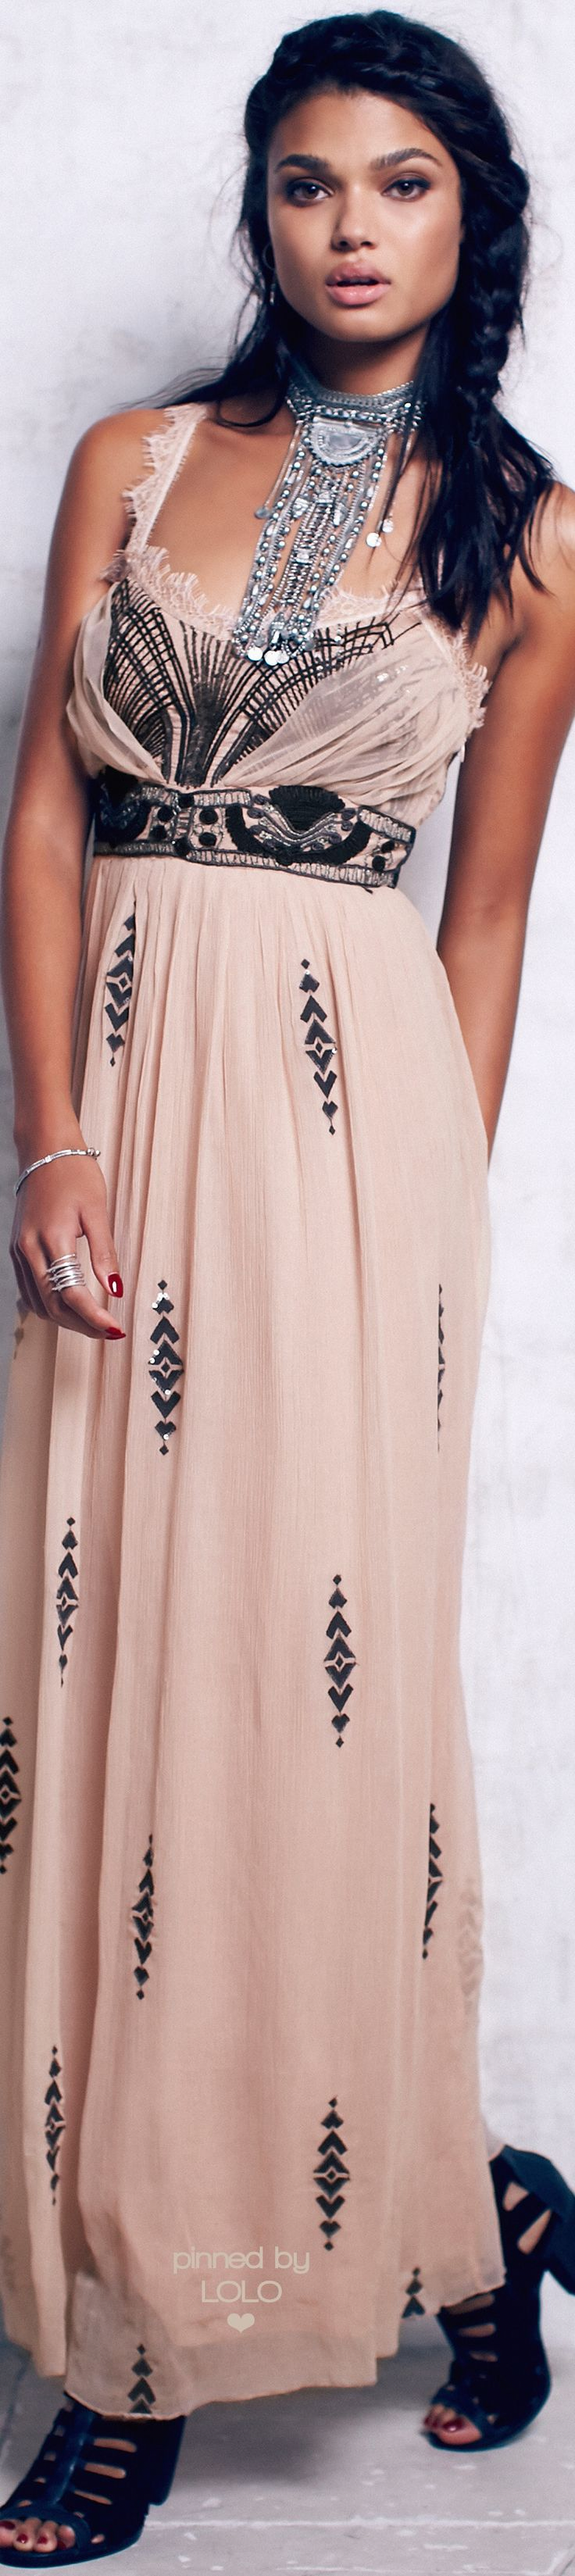 Free People sheer pink & black • ≫∙∙☮ Bohème Babe ☮∙∙≪• ❤️ Babz™ ✿ιиѕριяαтισи❀ #abbigliamento #bohojewelry #boho